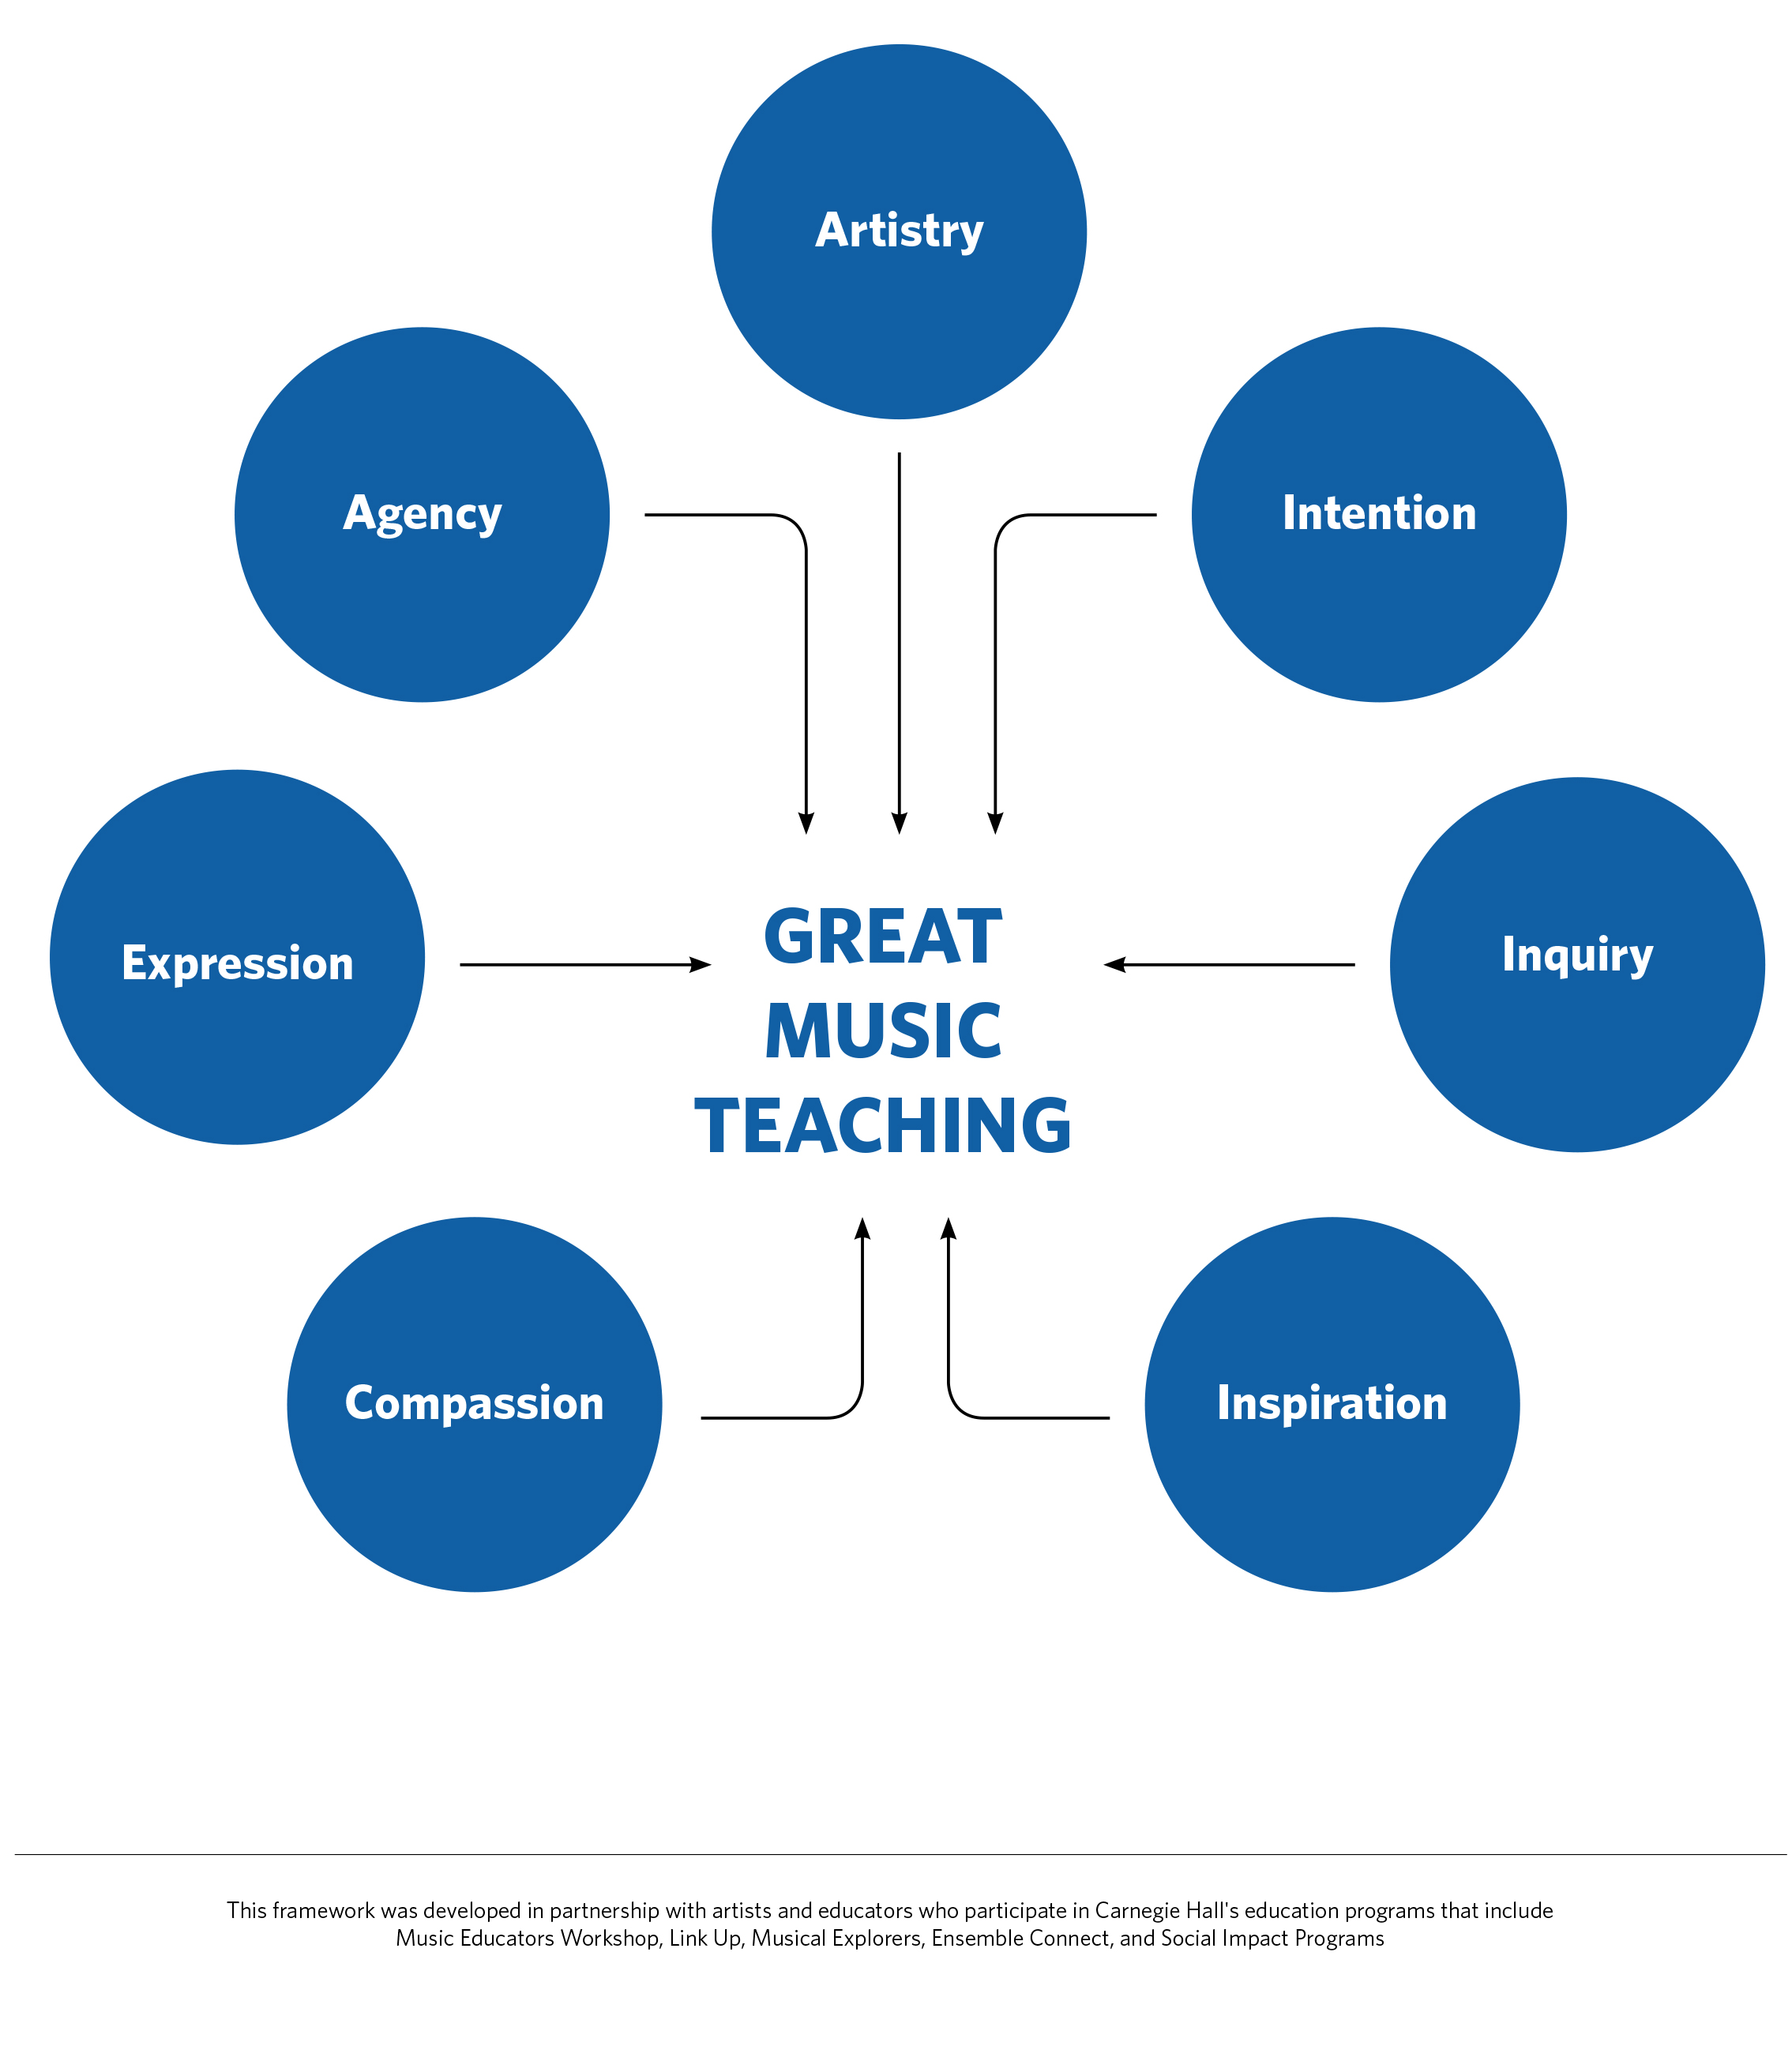 Great Music Teaching: Artistry, Intention, Inquiry, Inspiration, Compassion, Expression, Agency